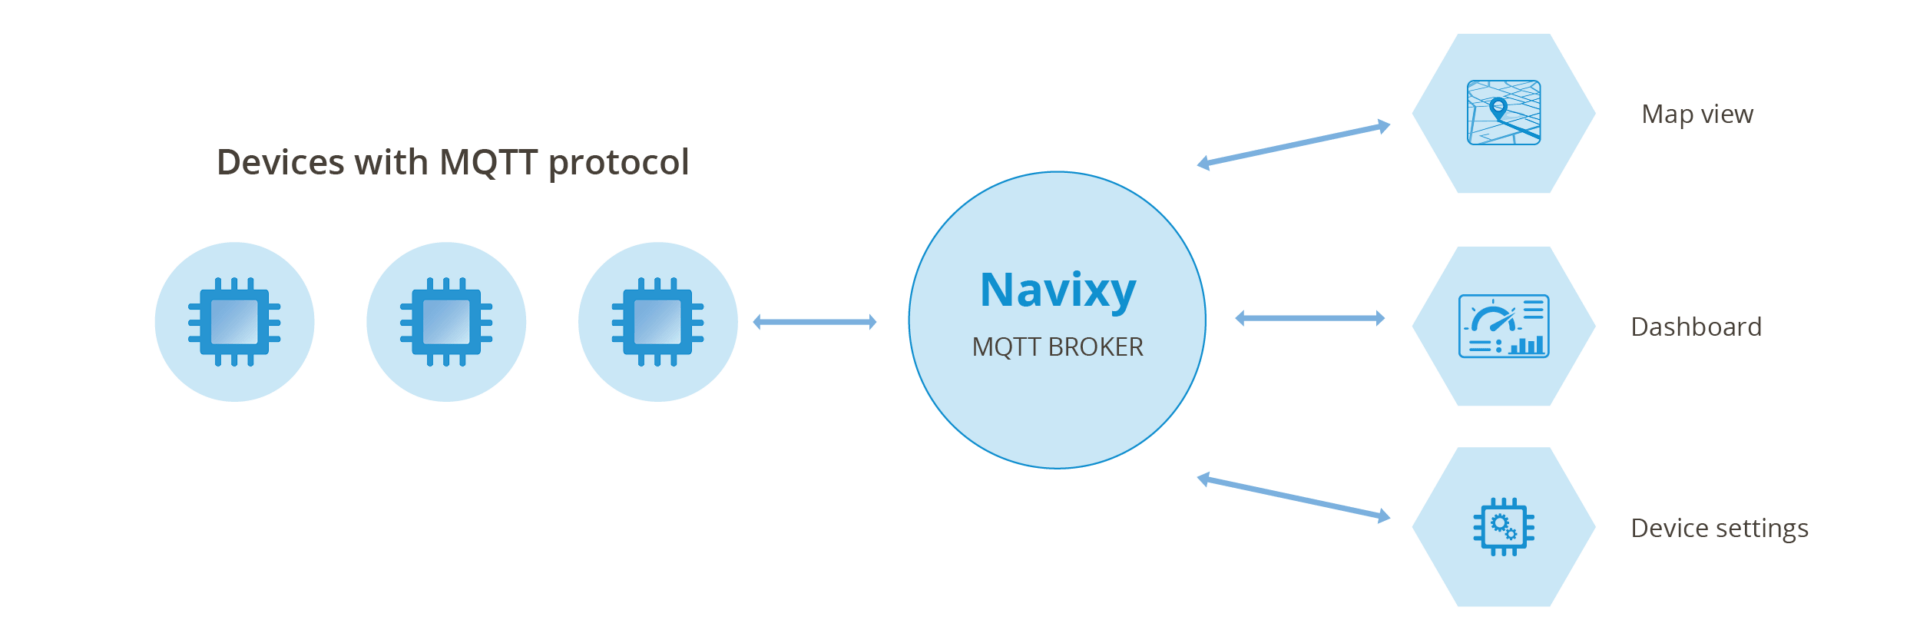 MQTT capable devices connected in a network with a Navixy MQTT broker